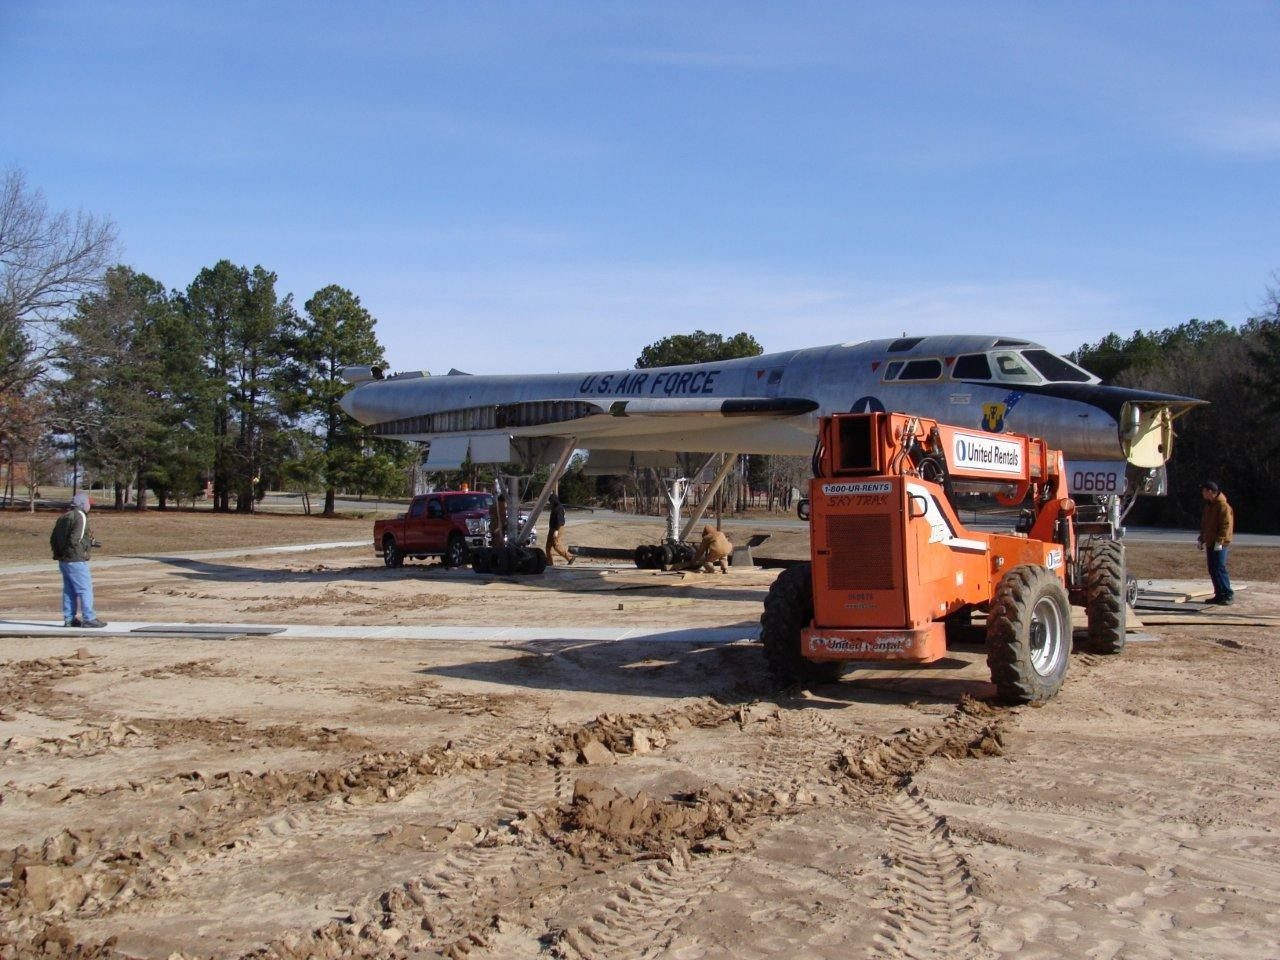 Click image for larger version  Name:B-58-transport-3.jpg Views:165 Size:288.7 KB ID:1937709